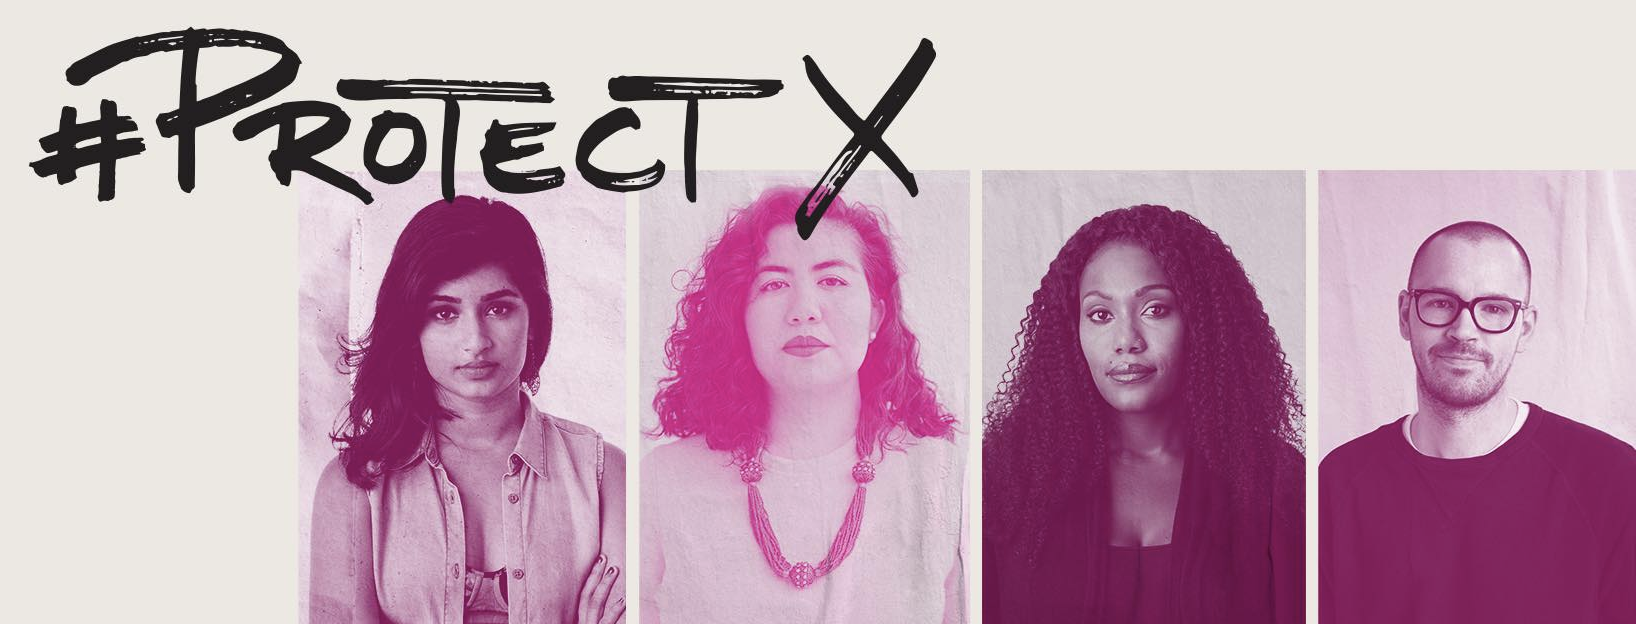 Planned Parenthood Tackles Complex Topics with Strong Visuals